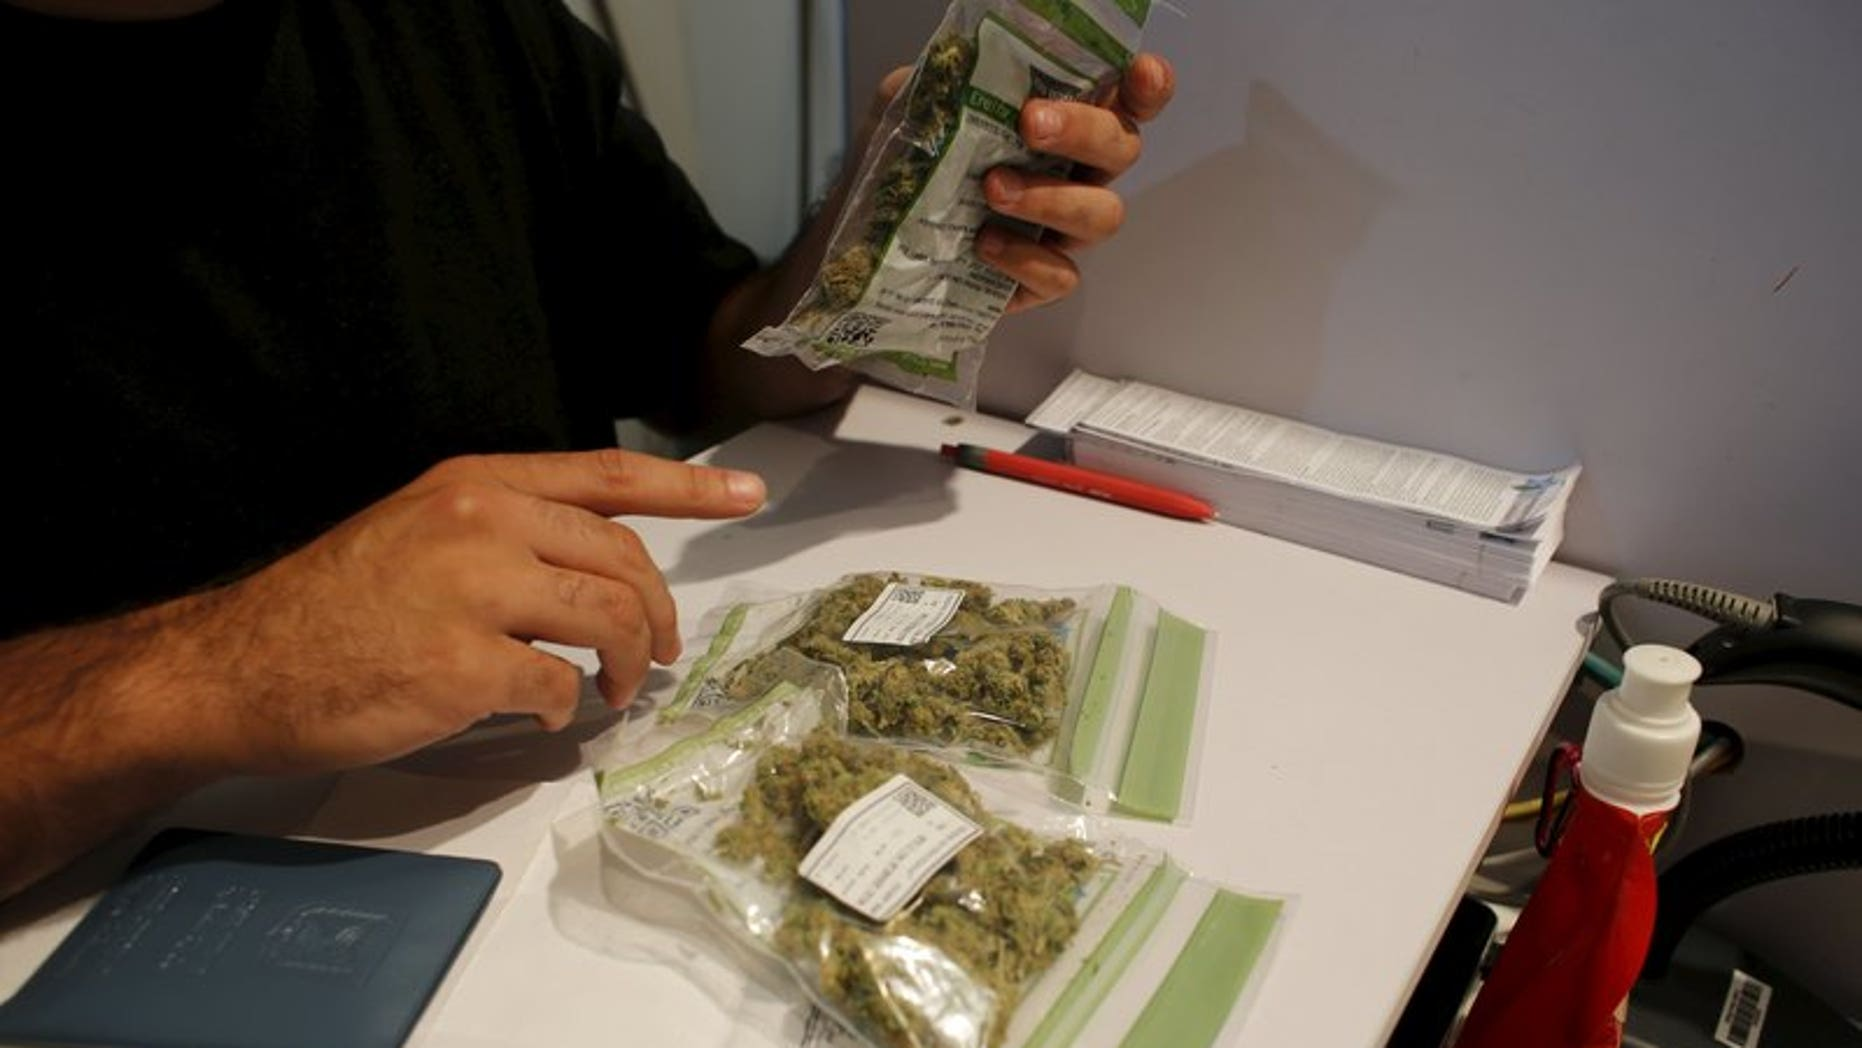 Packages of medical marijuana are seen on a counter at a dispensary belonging to Tikun Olam, Israel's largest medical marijuana supplier, in Tel Aviv